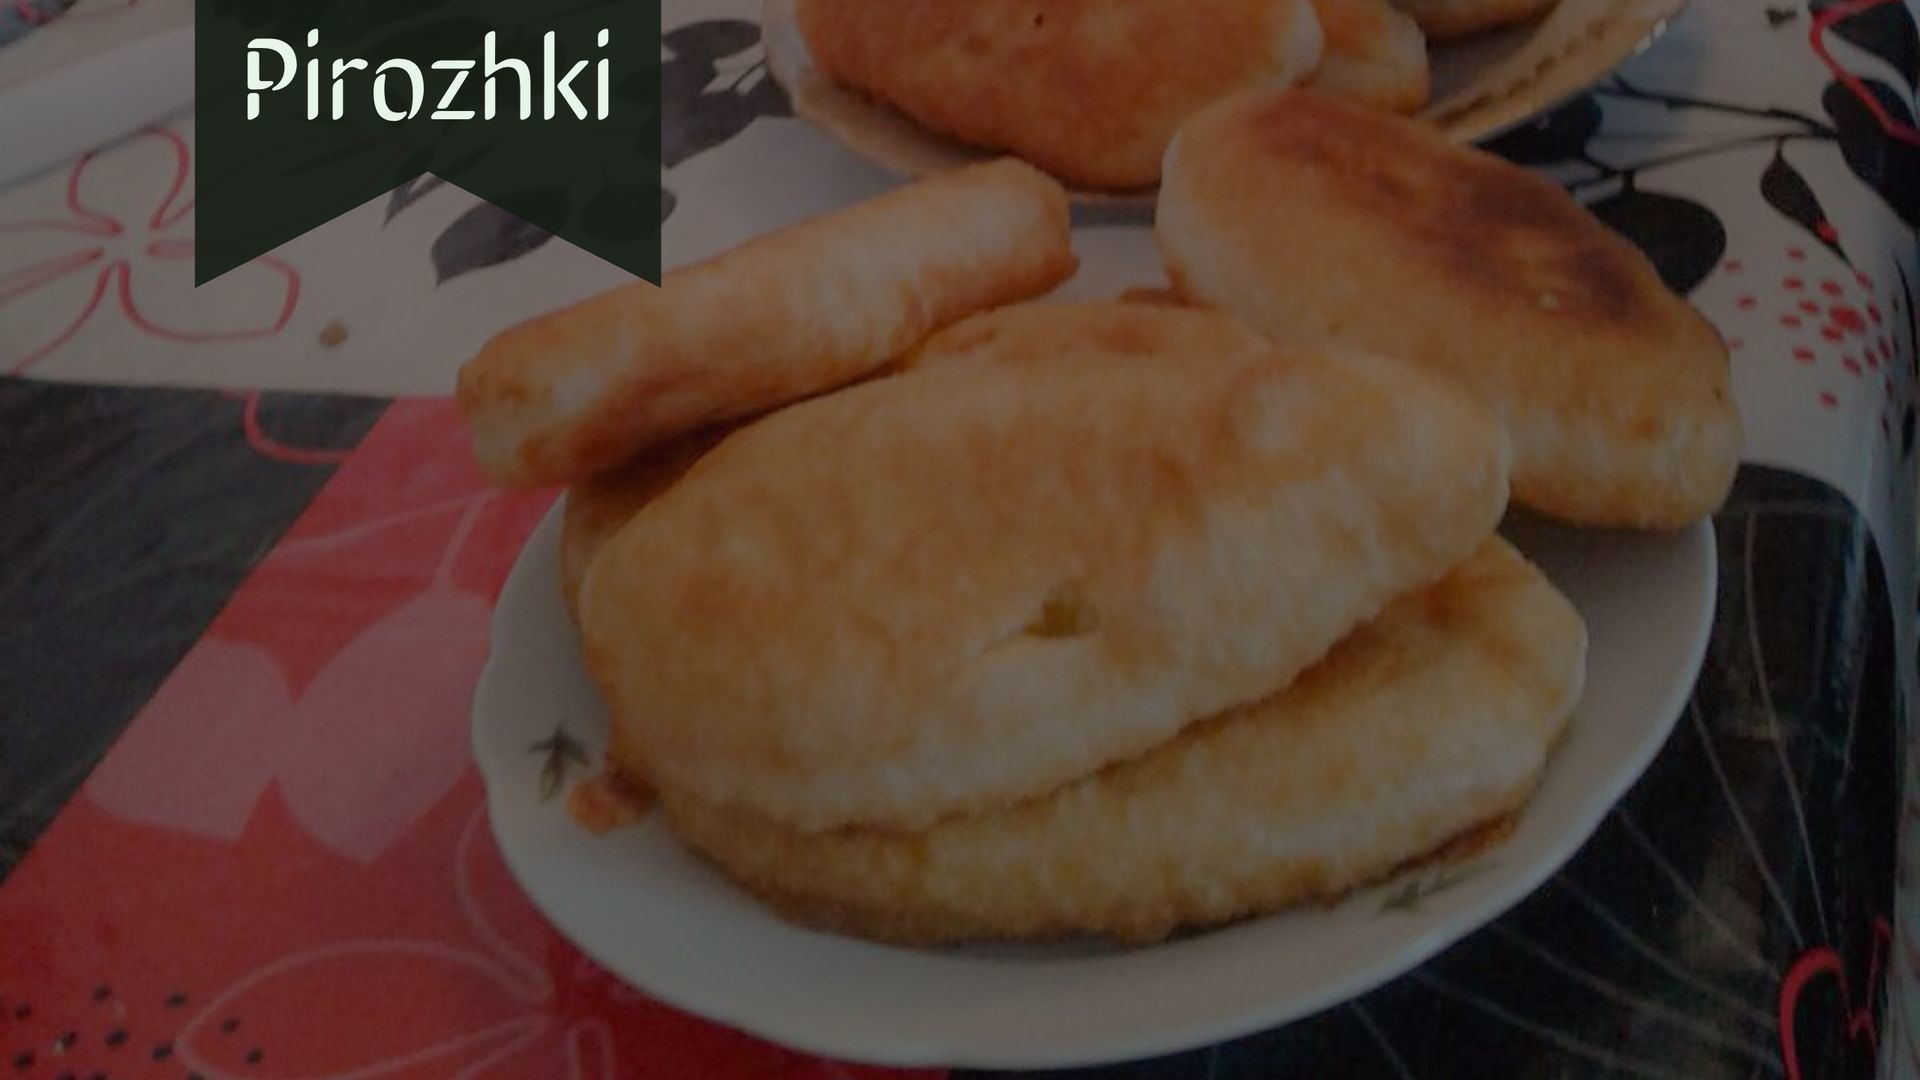 pirojki or pirozhki baked and fried apetizers